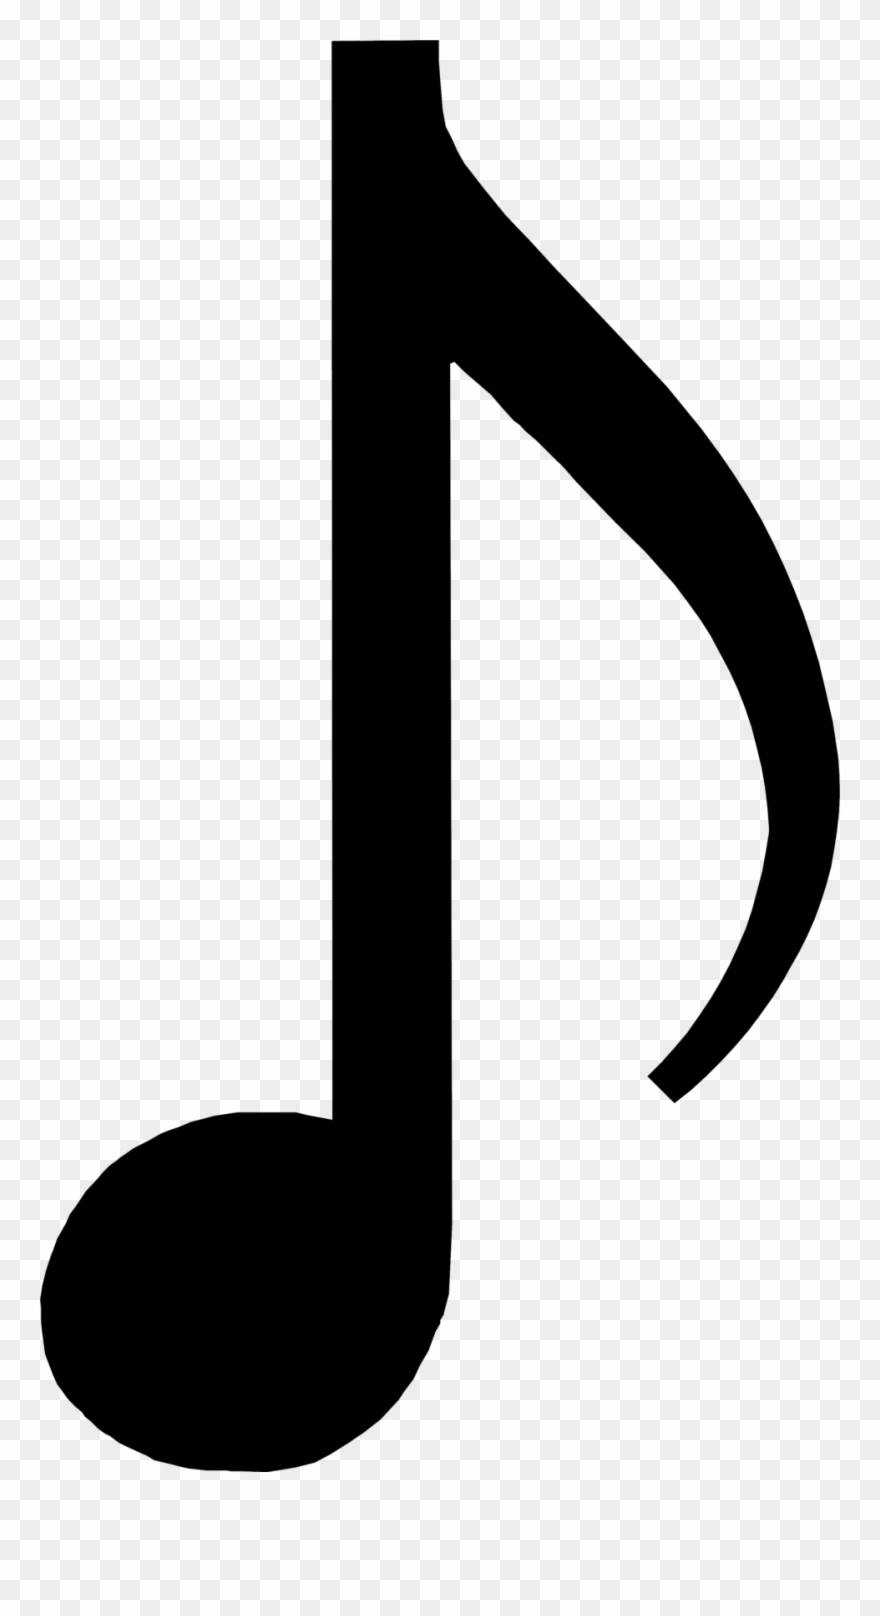 Svg Freeuse Download Clipart Music Notes Free.